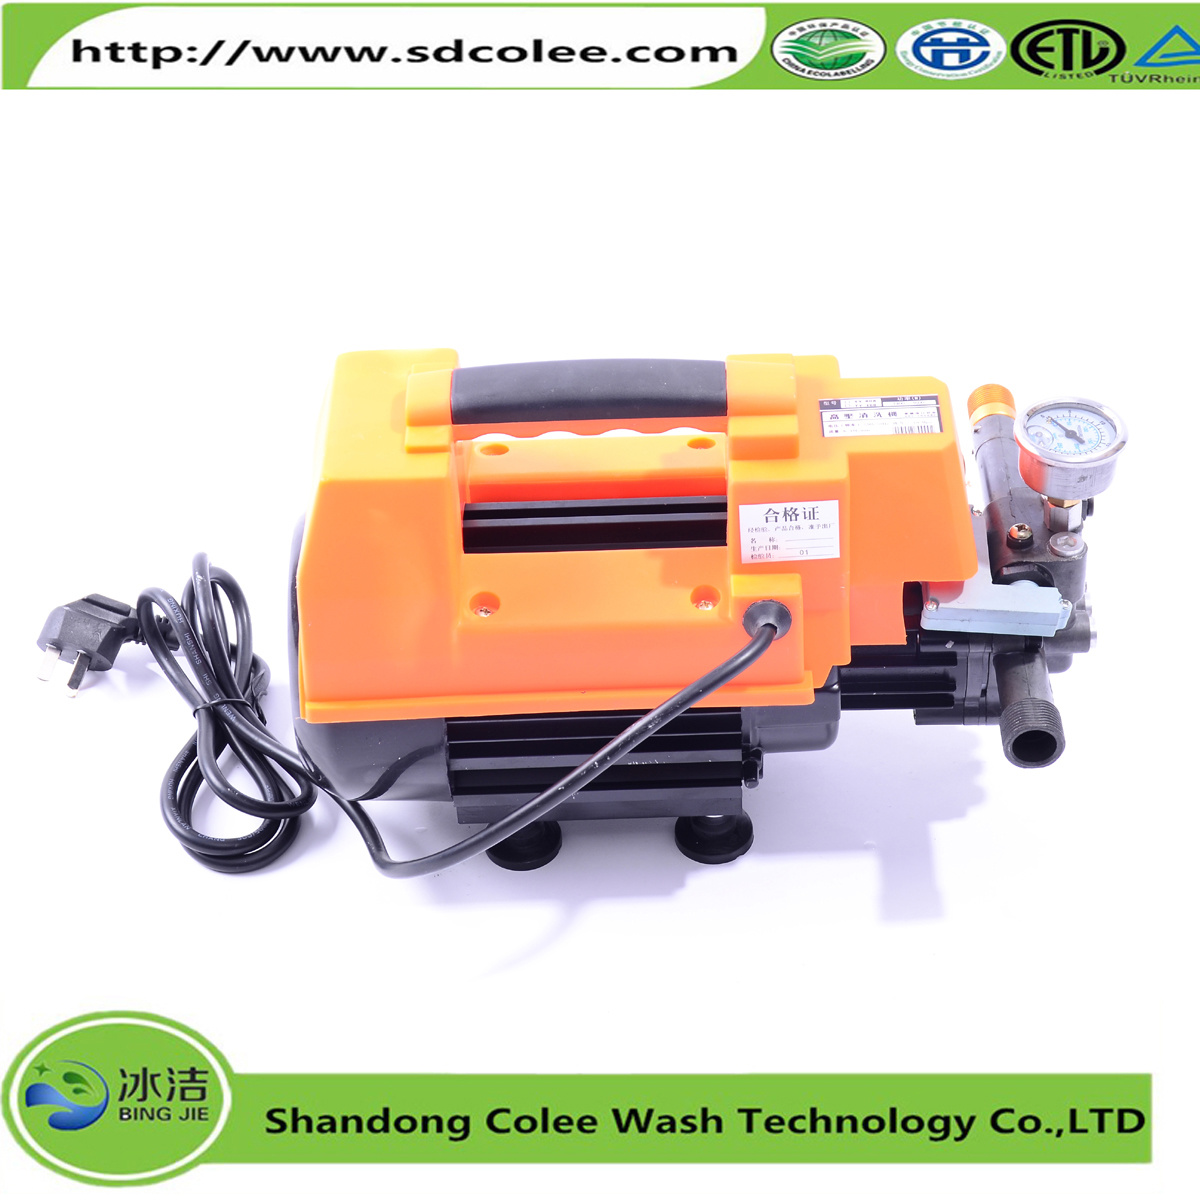 High Pressure Grease Stained Cleaning Equipment